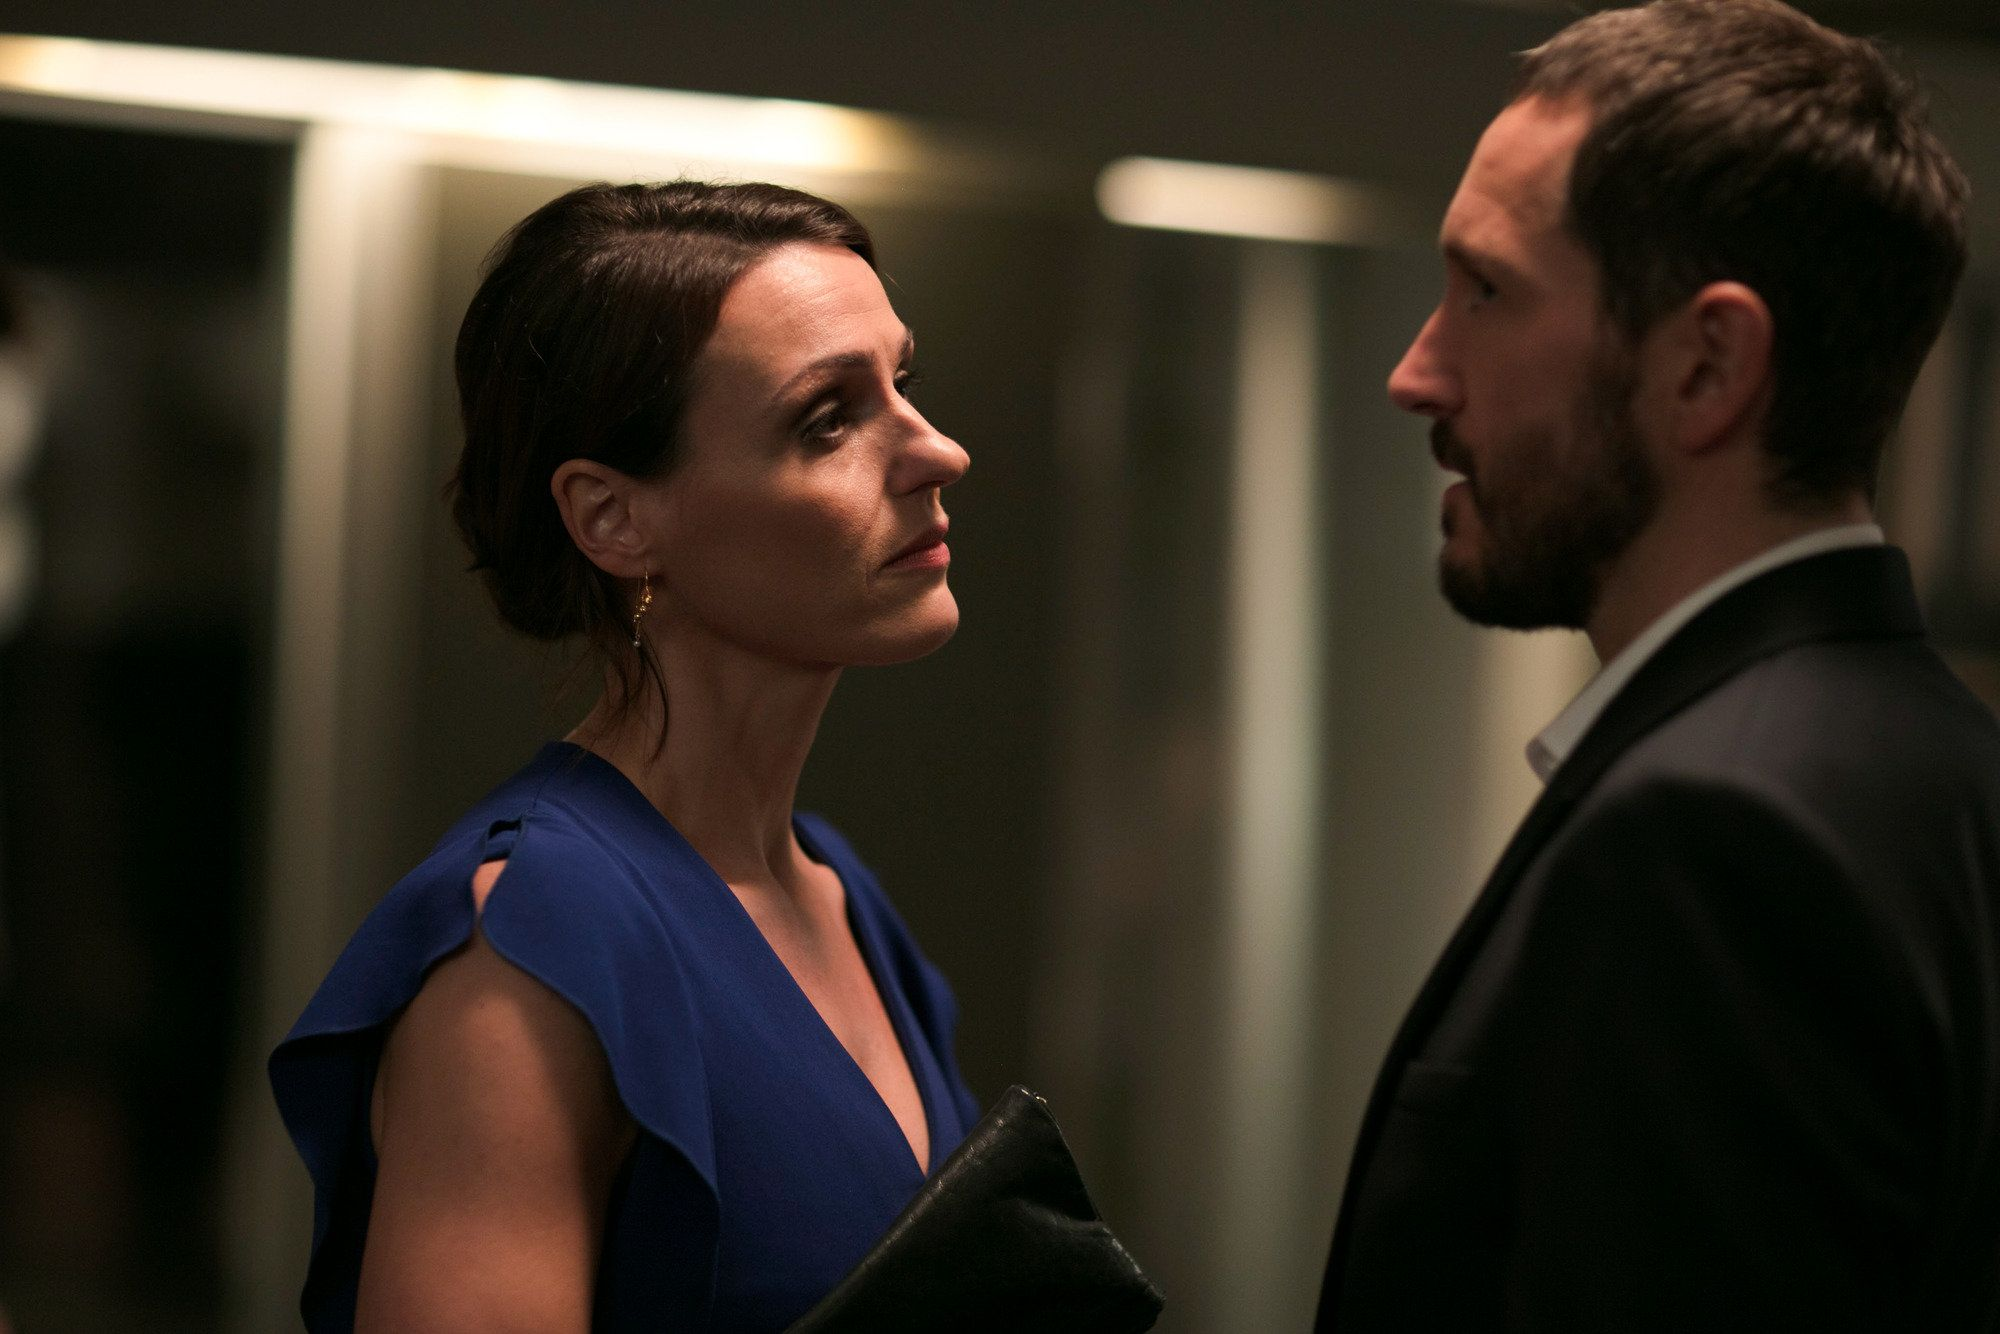 'Doctor Foster' Star Suranne Jones Hints There Could Be A Third Series Of The BBC